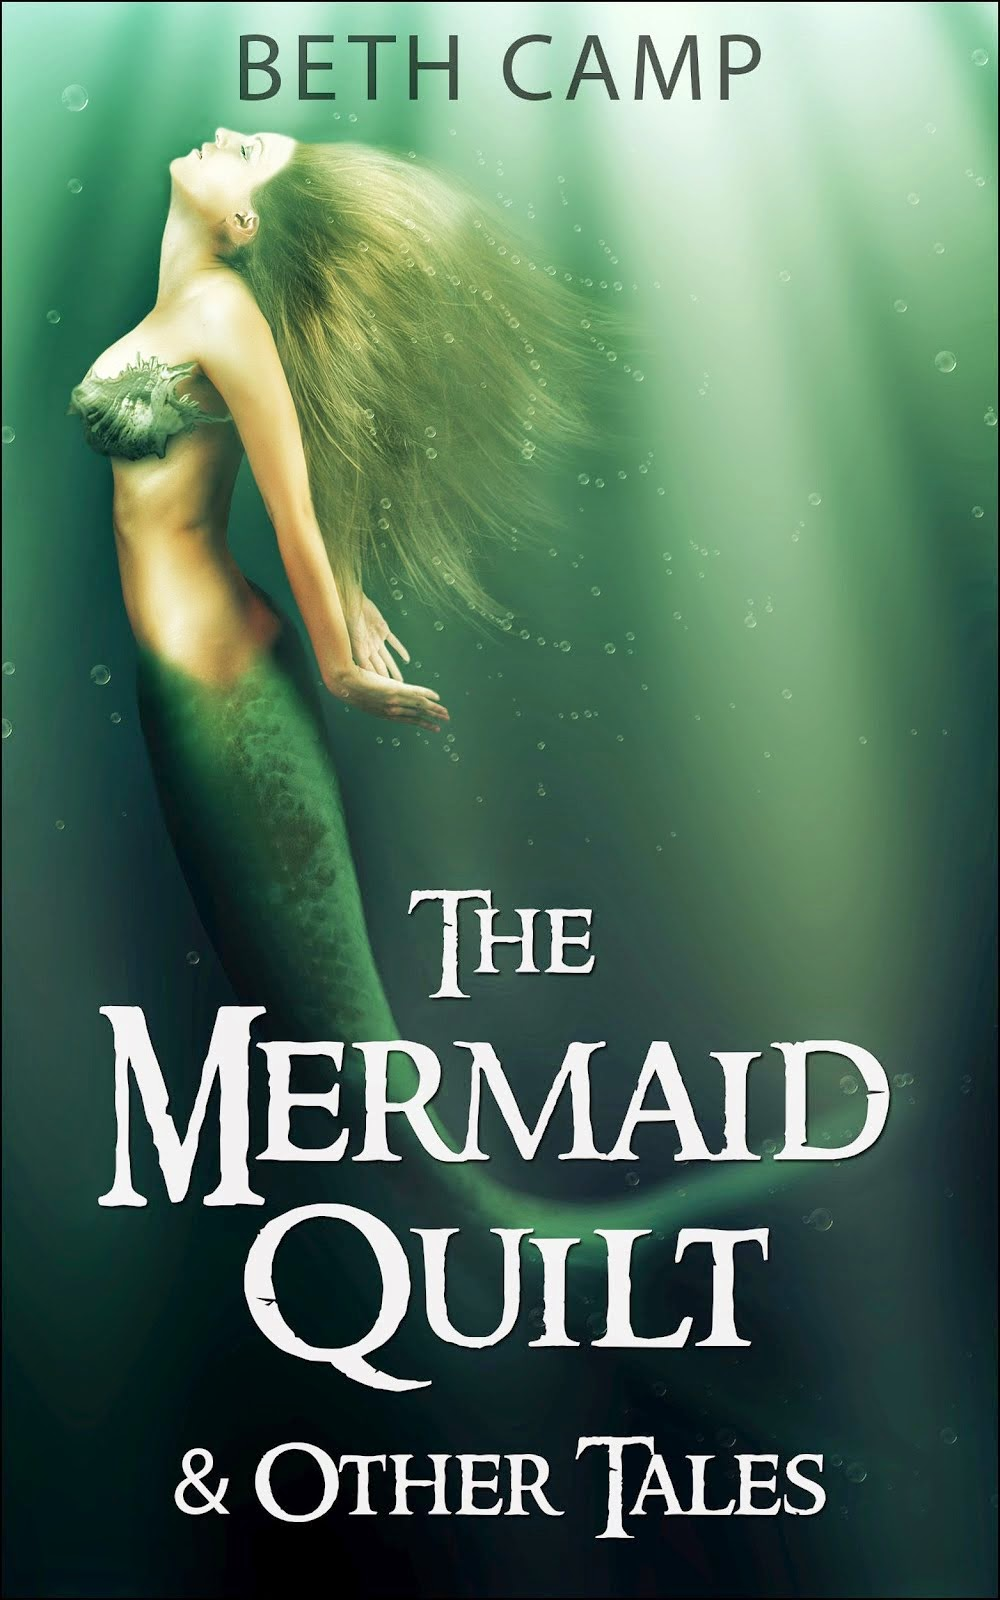 Mermaids and myths: short stories and poems for your reading pleasure